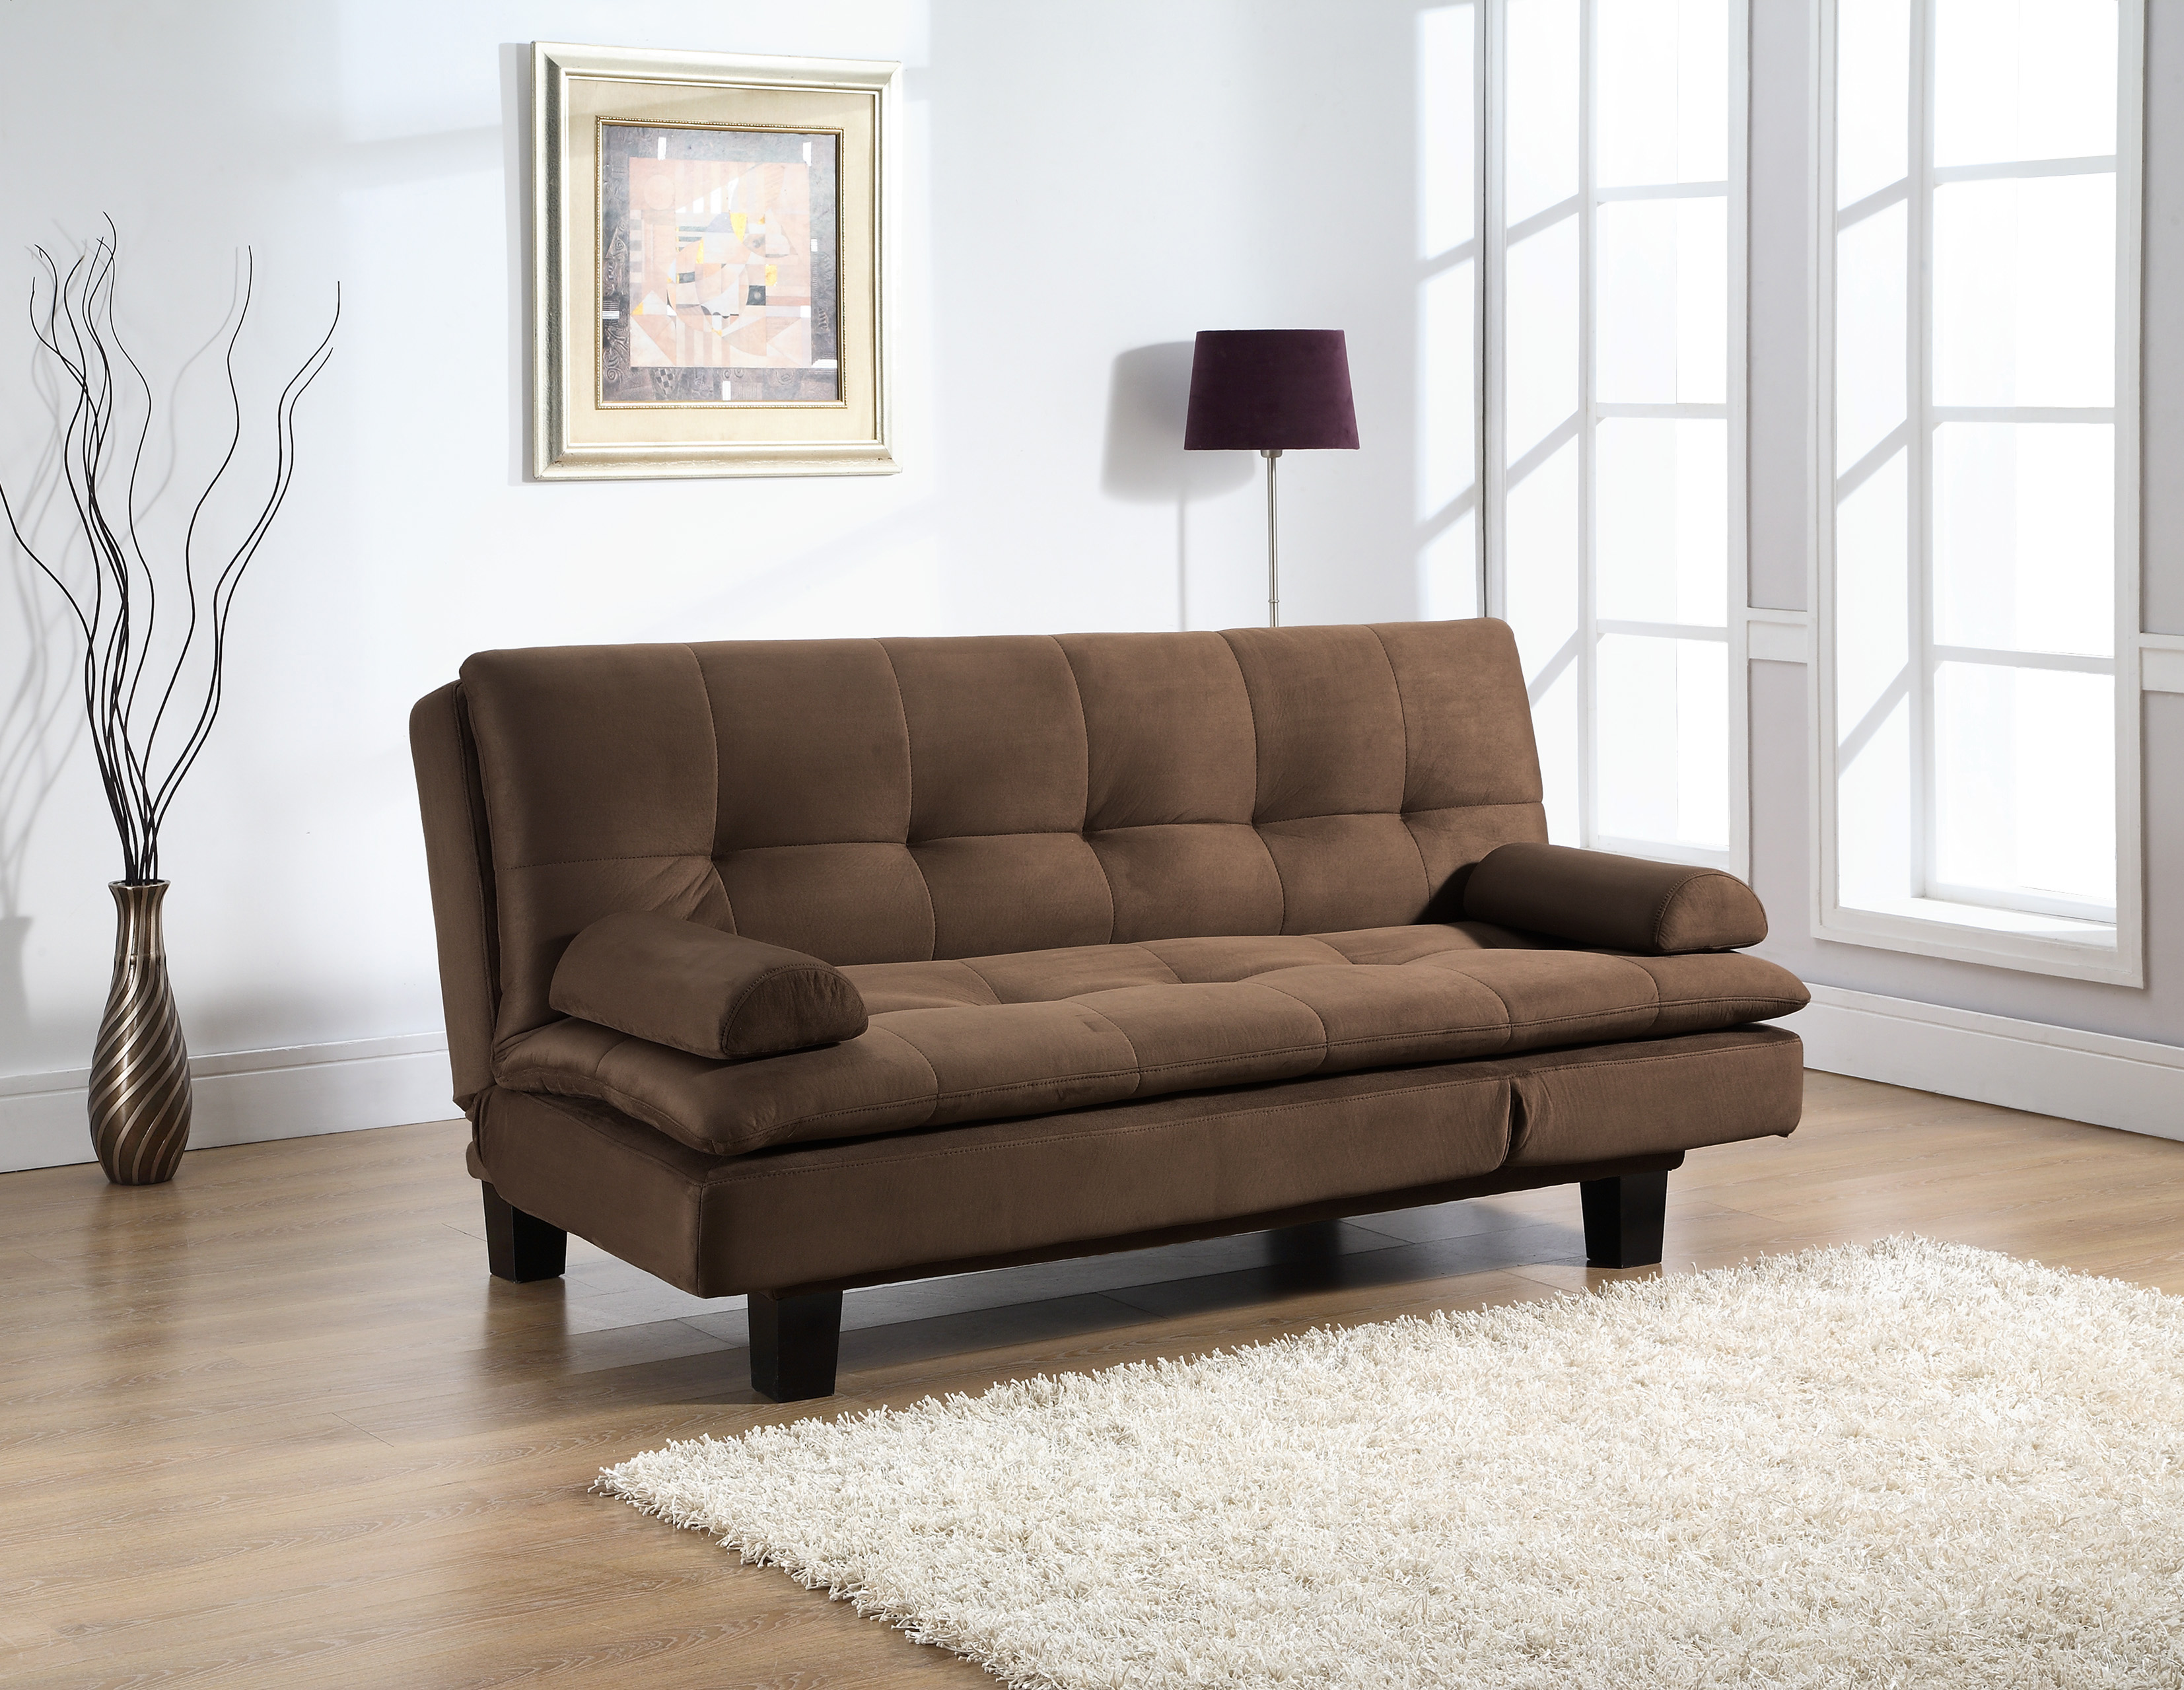 Lounge Couch Adelaide Convertible Sofa By Lifestyle Solutions Java ...